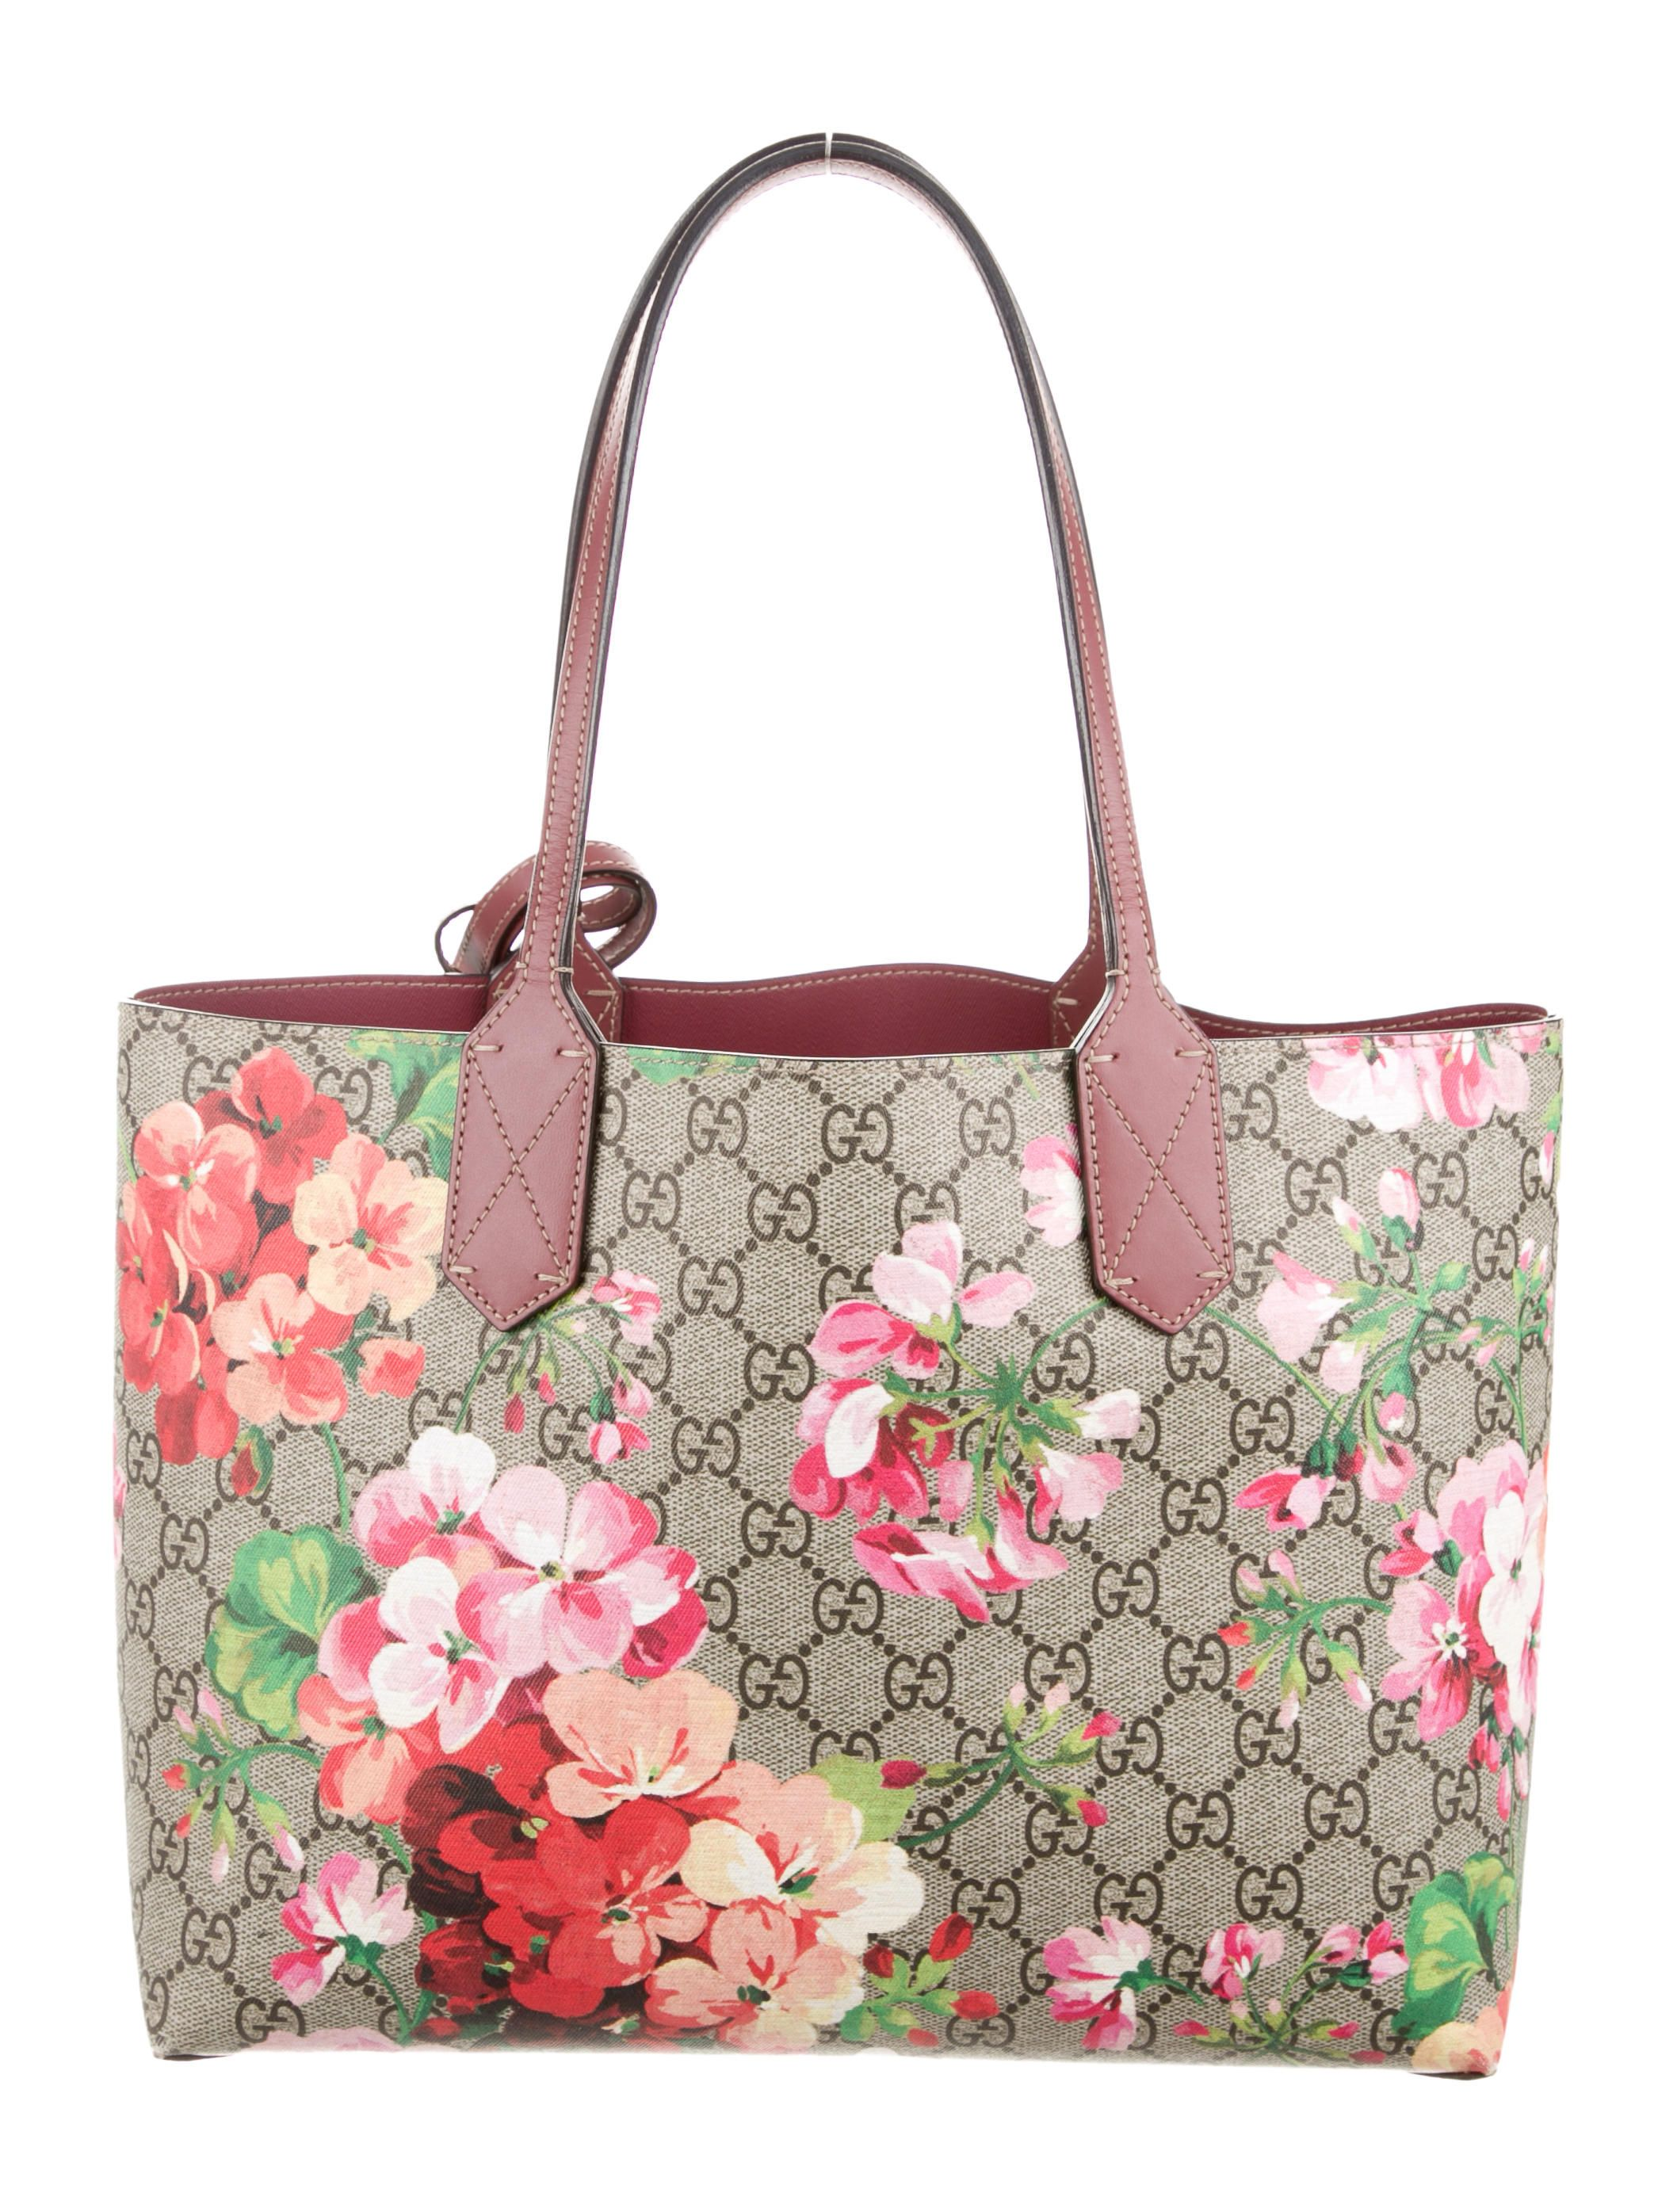 a9c75cf16ba Gucci Small Reversible GG Blooms Tote